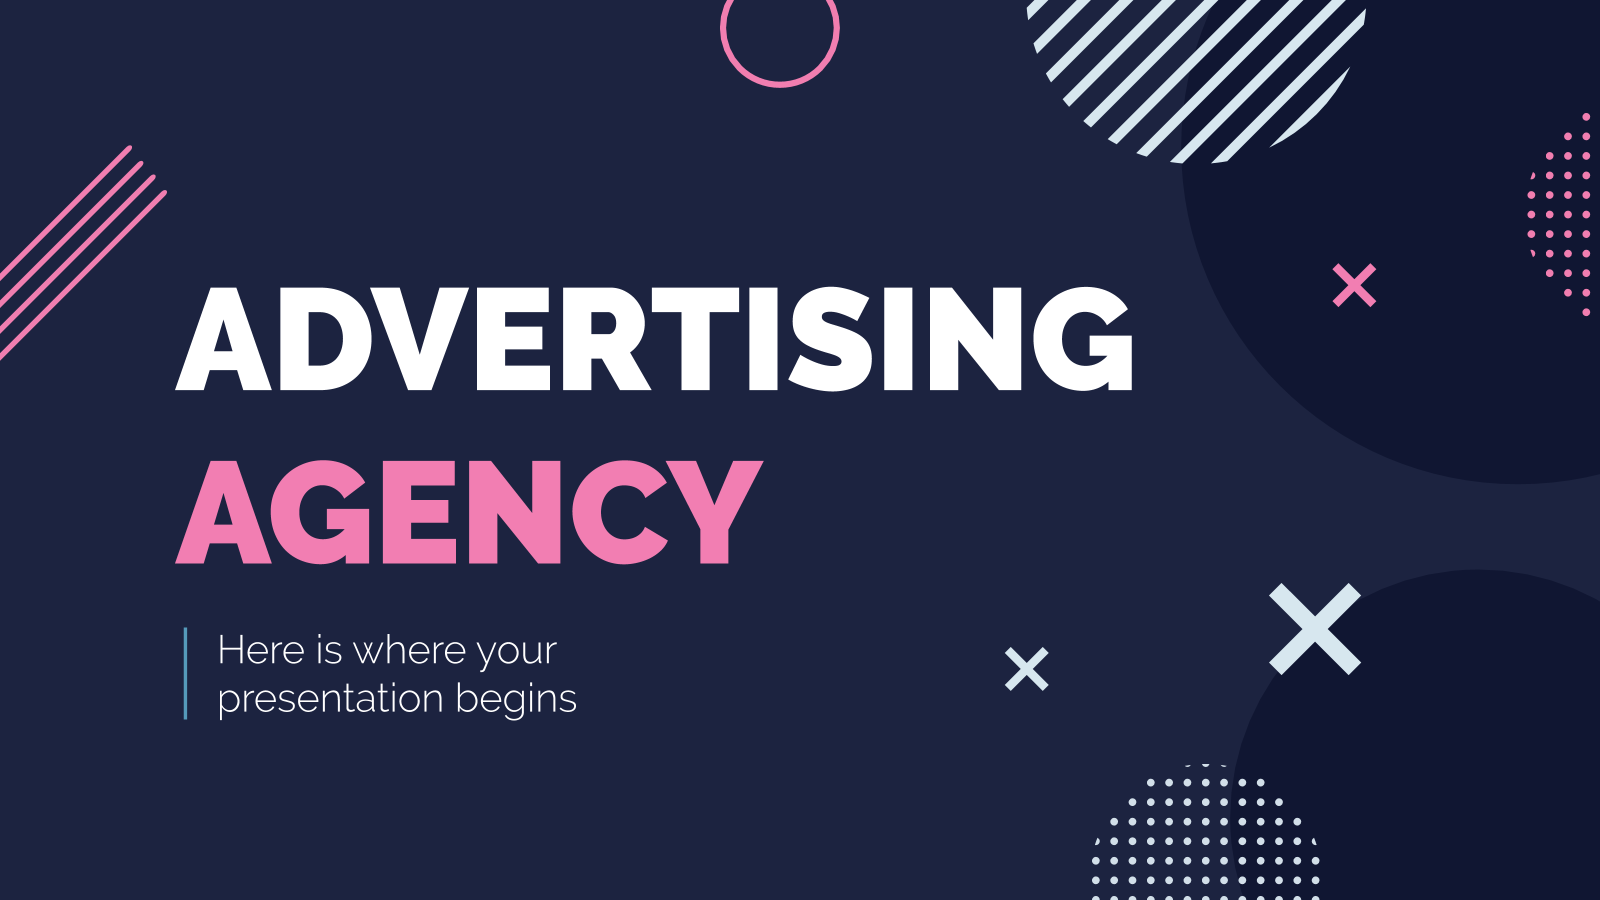 Advertising Agency presentation template